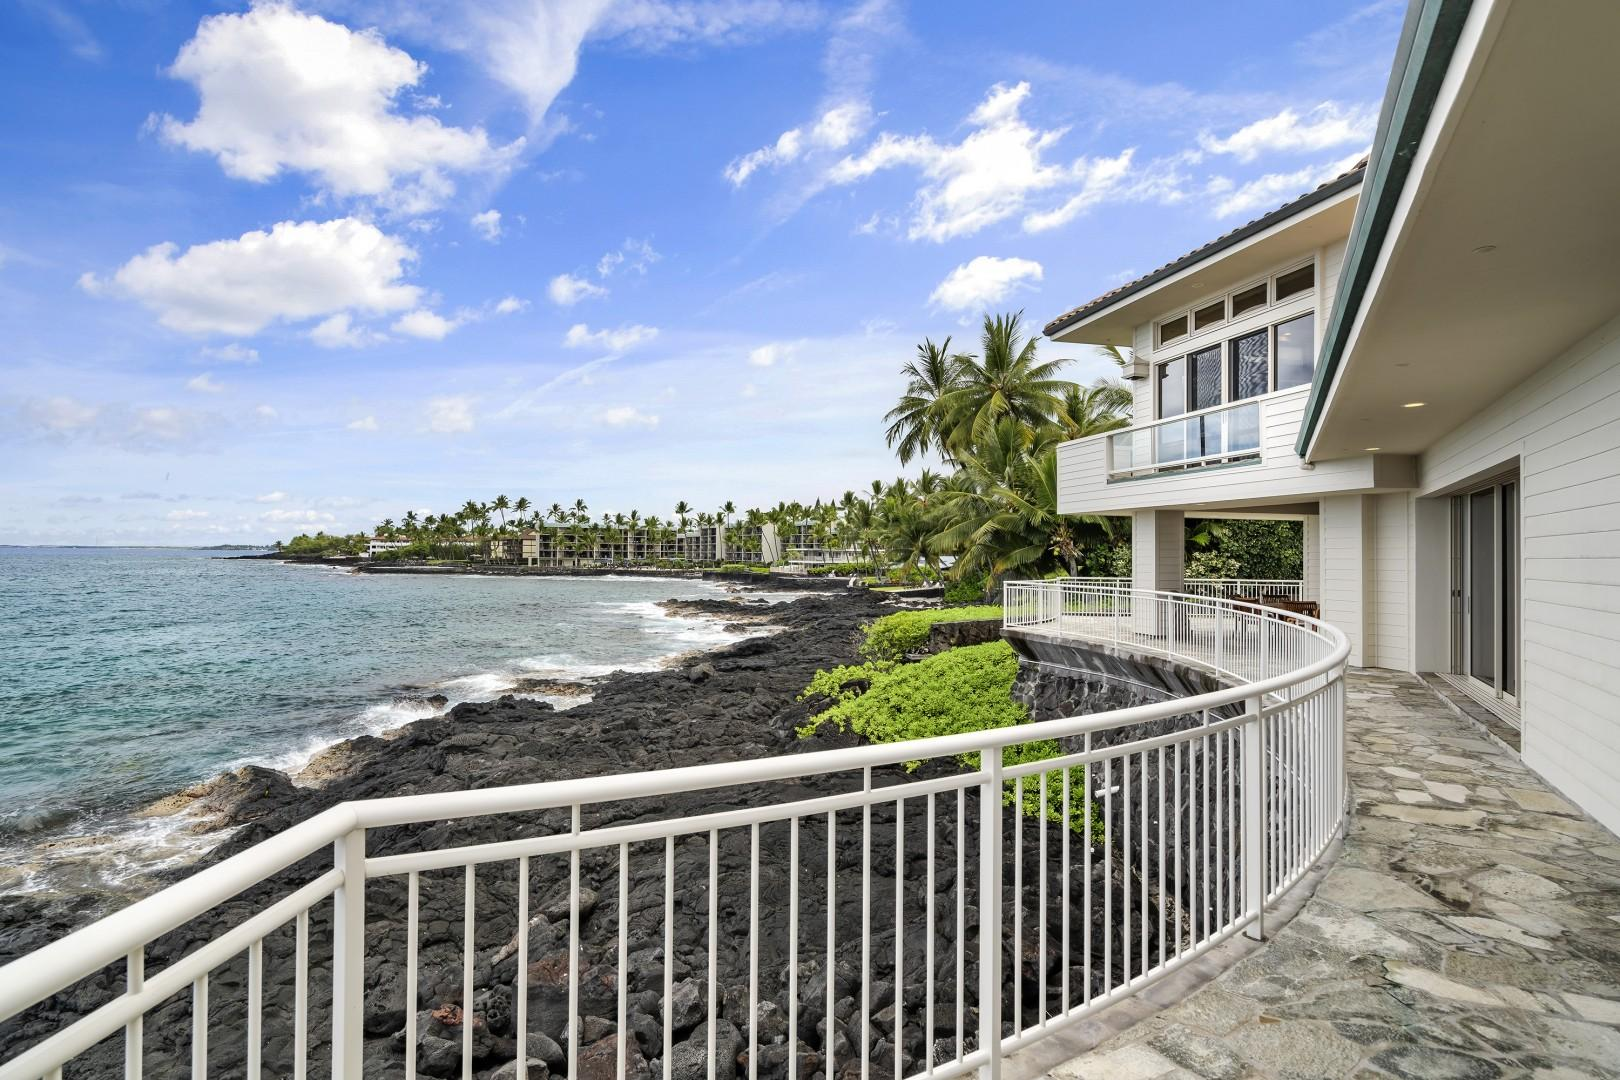 Large ocean frontage allows for multiple vantage points to take in the ocean activity!